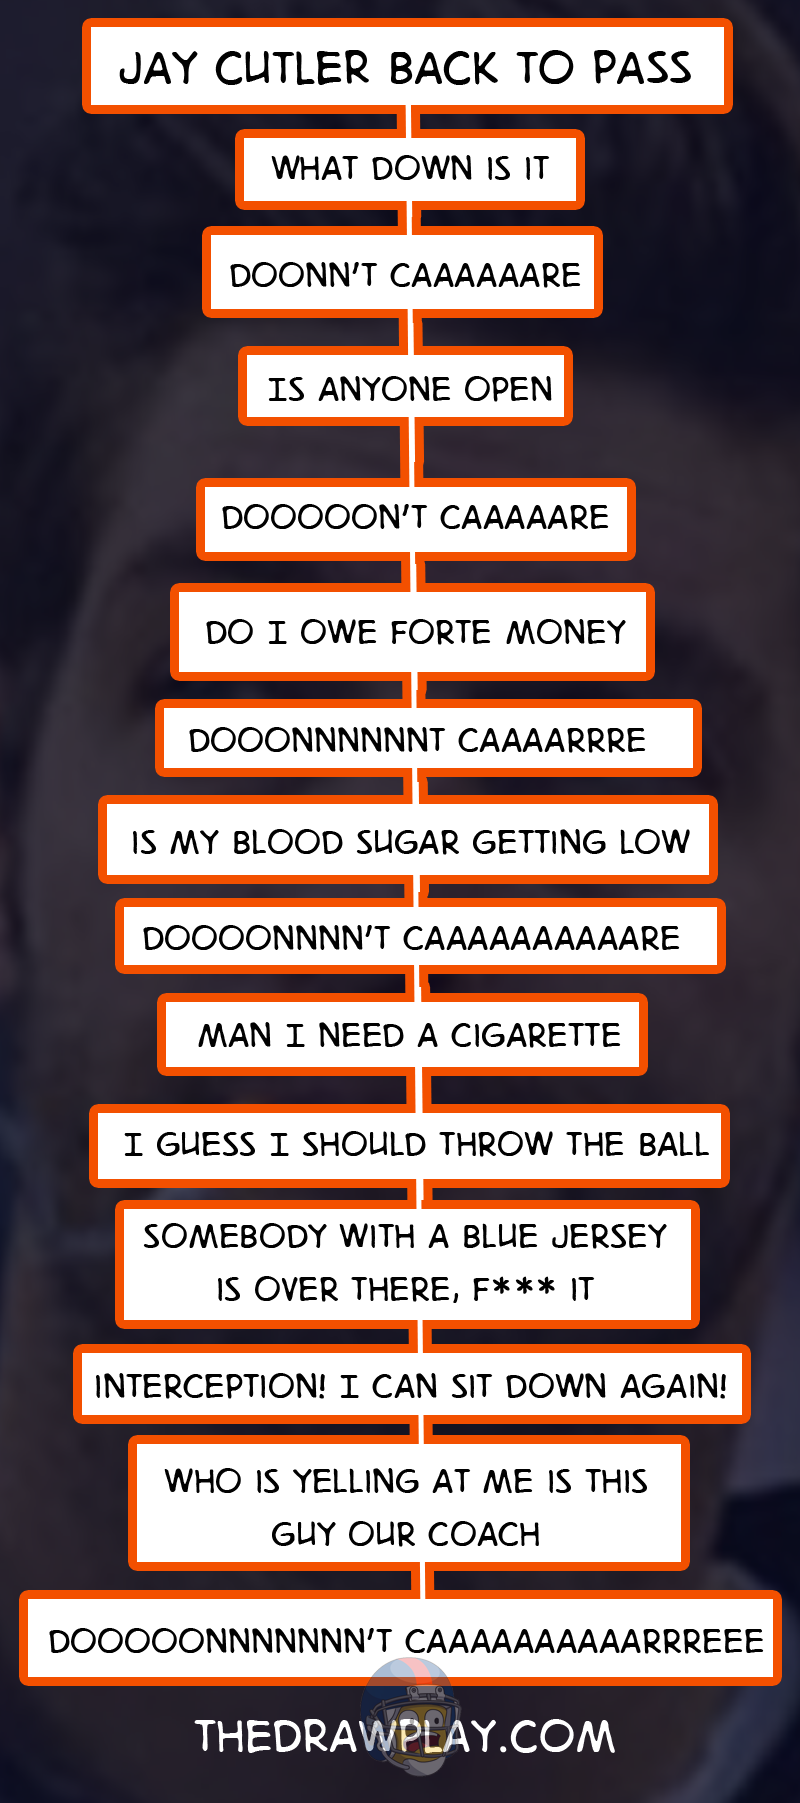 The Jay Cutler thought process http://t.co/itUSVWn3Yq